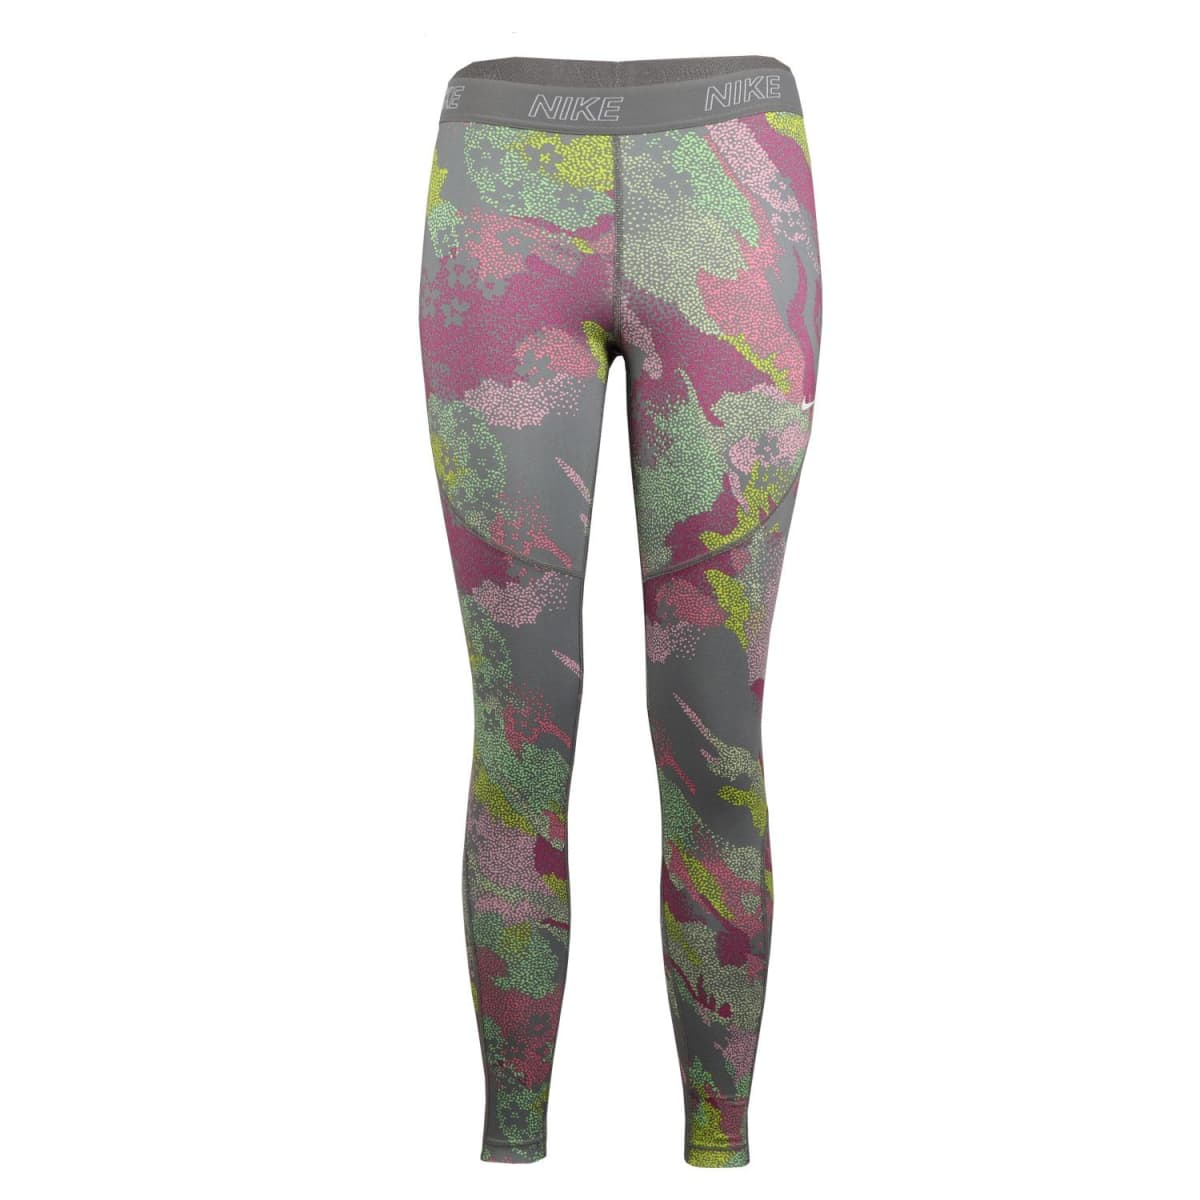 85e9a7e7ca Product Image. Nike Woman's Modern Floral Victory Tight